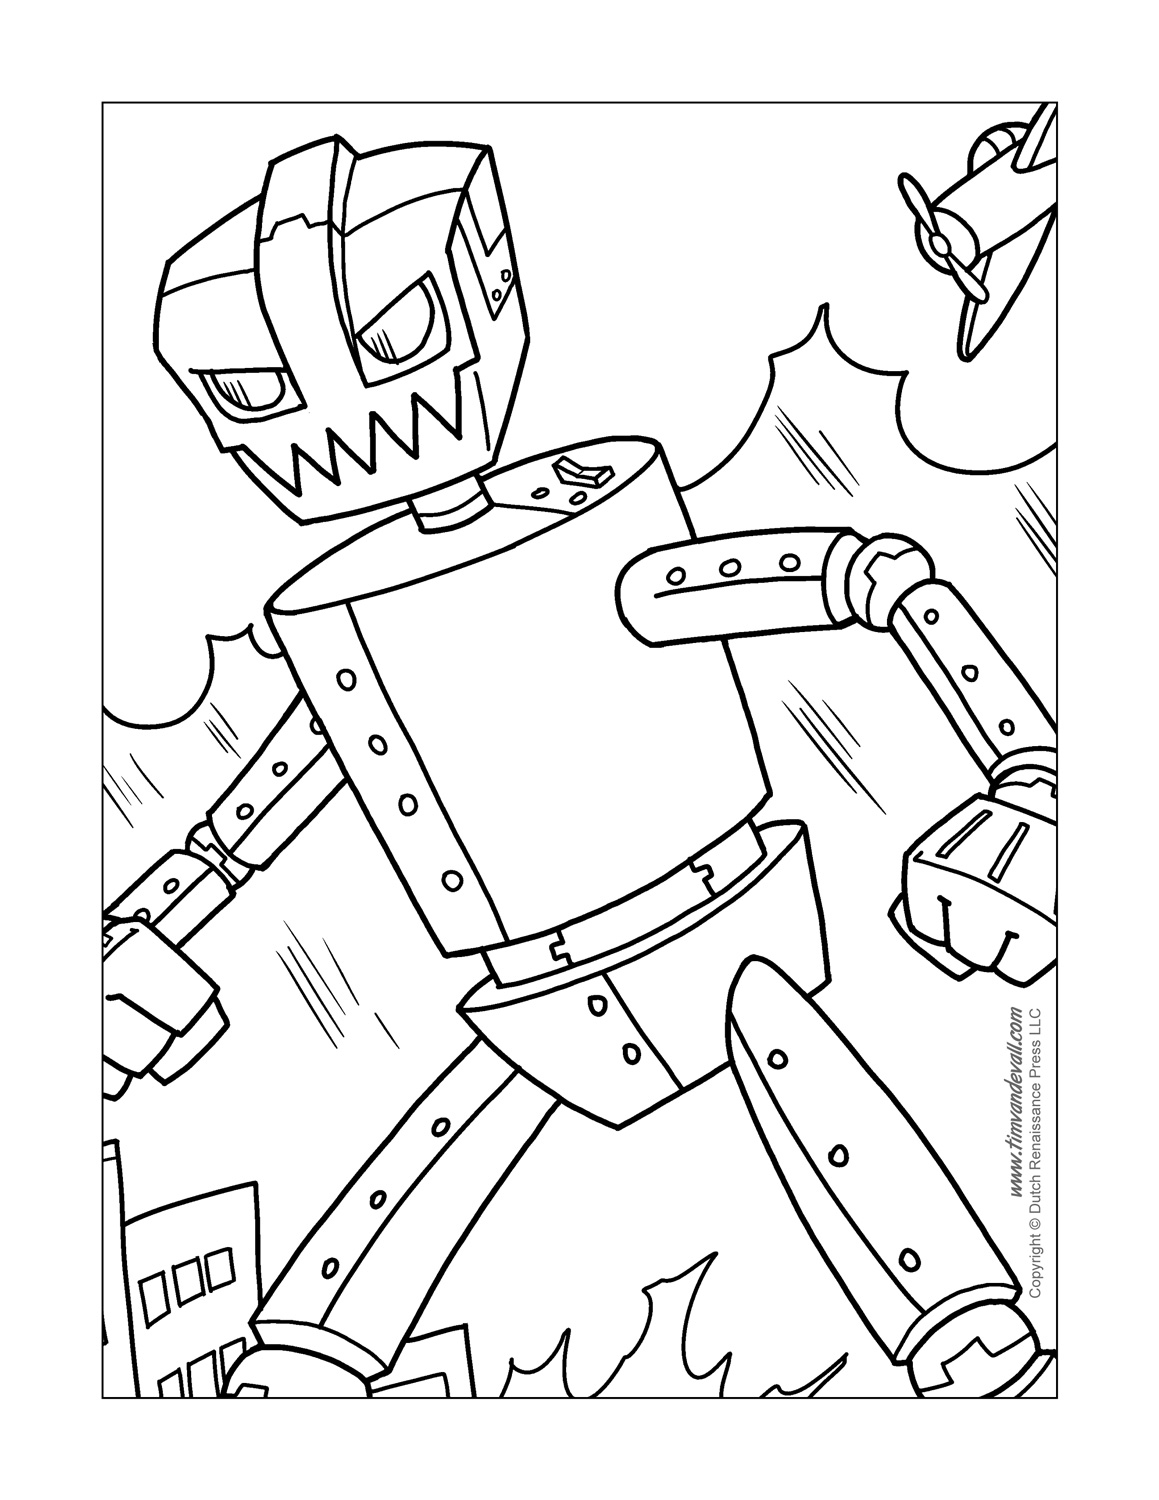 coloring robot pages coloring sheet giant robot by sea salt on deviantart coloring pages robot